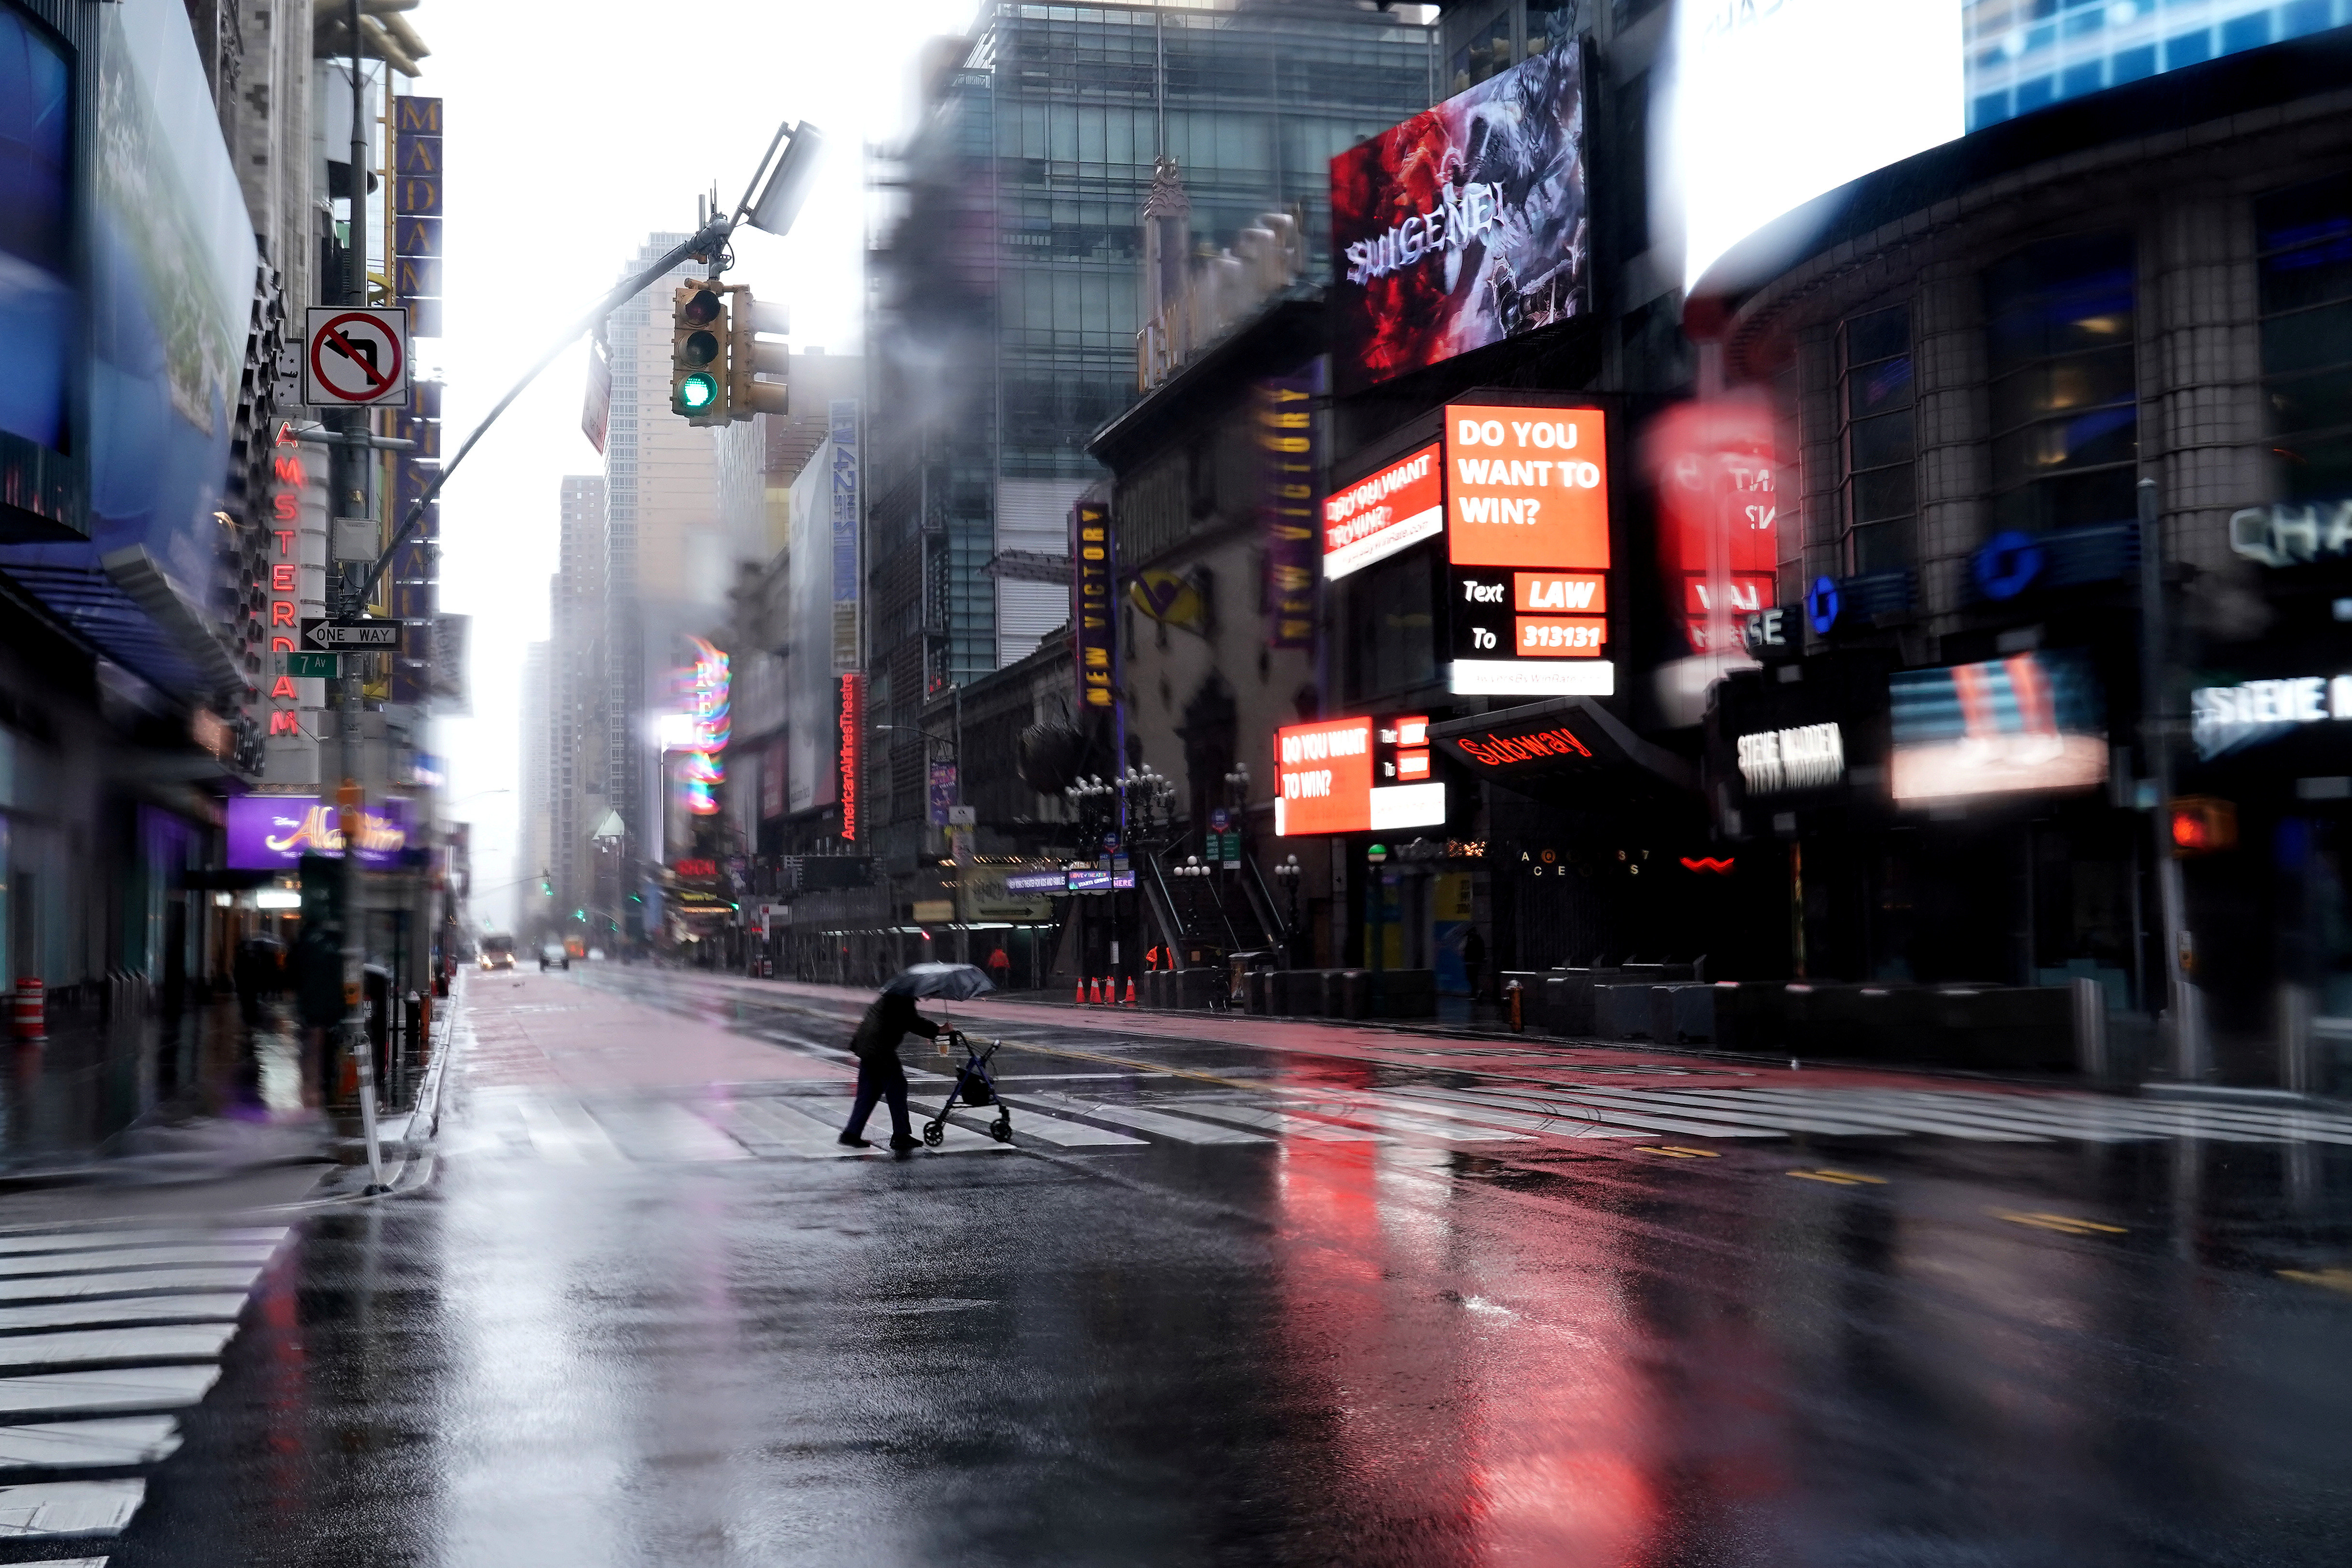 A person with a walker crosses 42nd Street in a mostly deserted Times Square following the outbreak of Coronavirus disease (COVID-19), in the Manhattan borough of New York City, New York, U.S., March 23, 2020. REUTERS/Carlo Allegri     TPX IMAGES OF THE DAY - RC2UPF9LAE4V